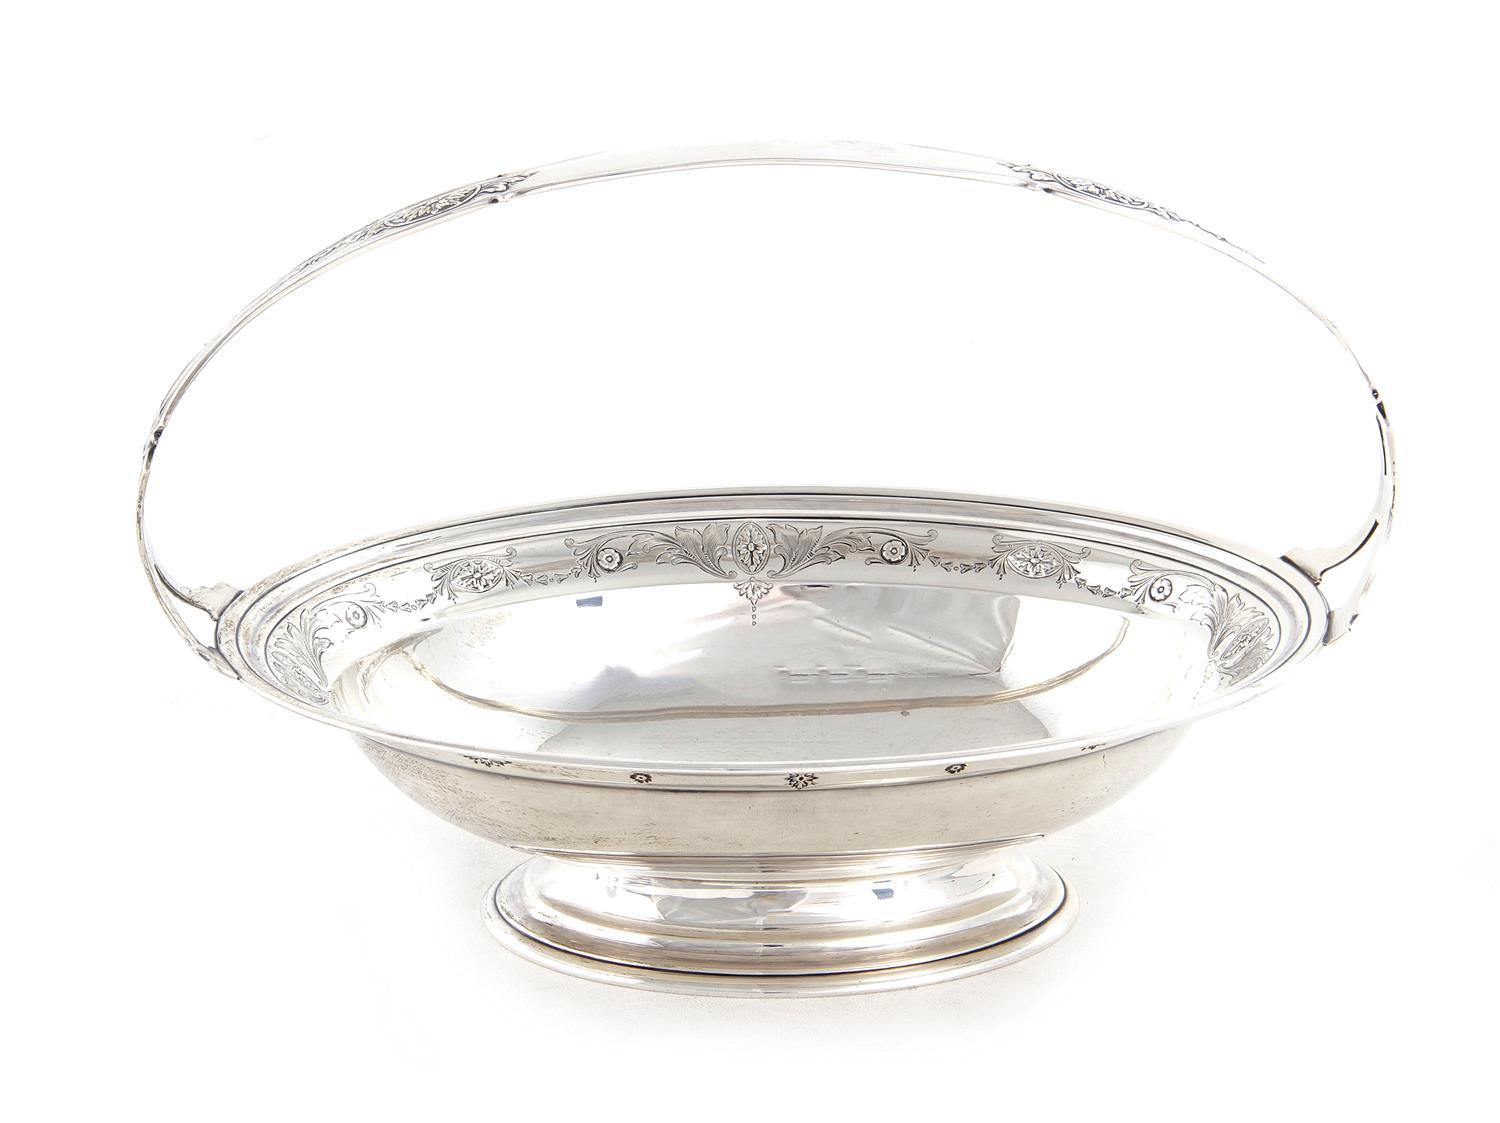 Whiting Mfg. silver oval basket